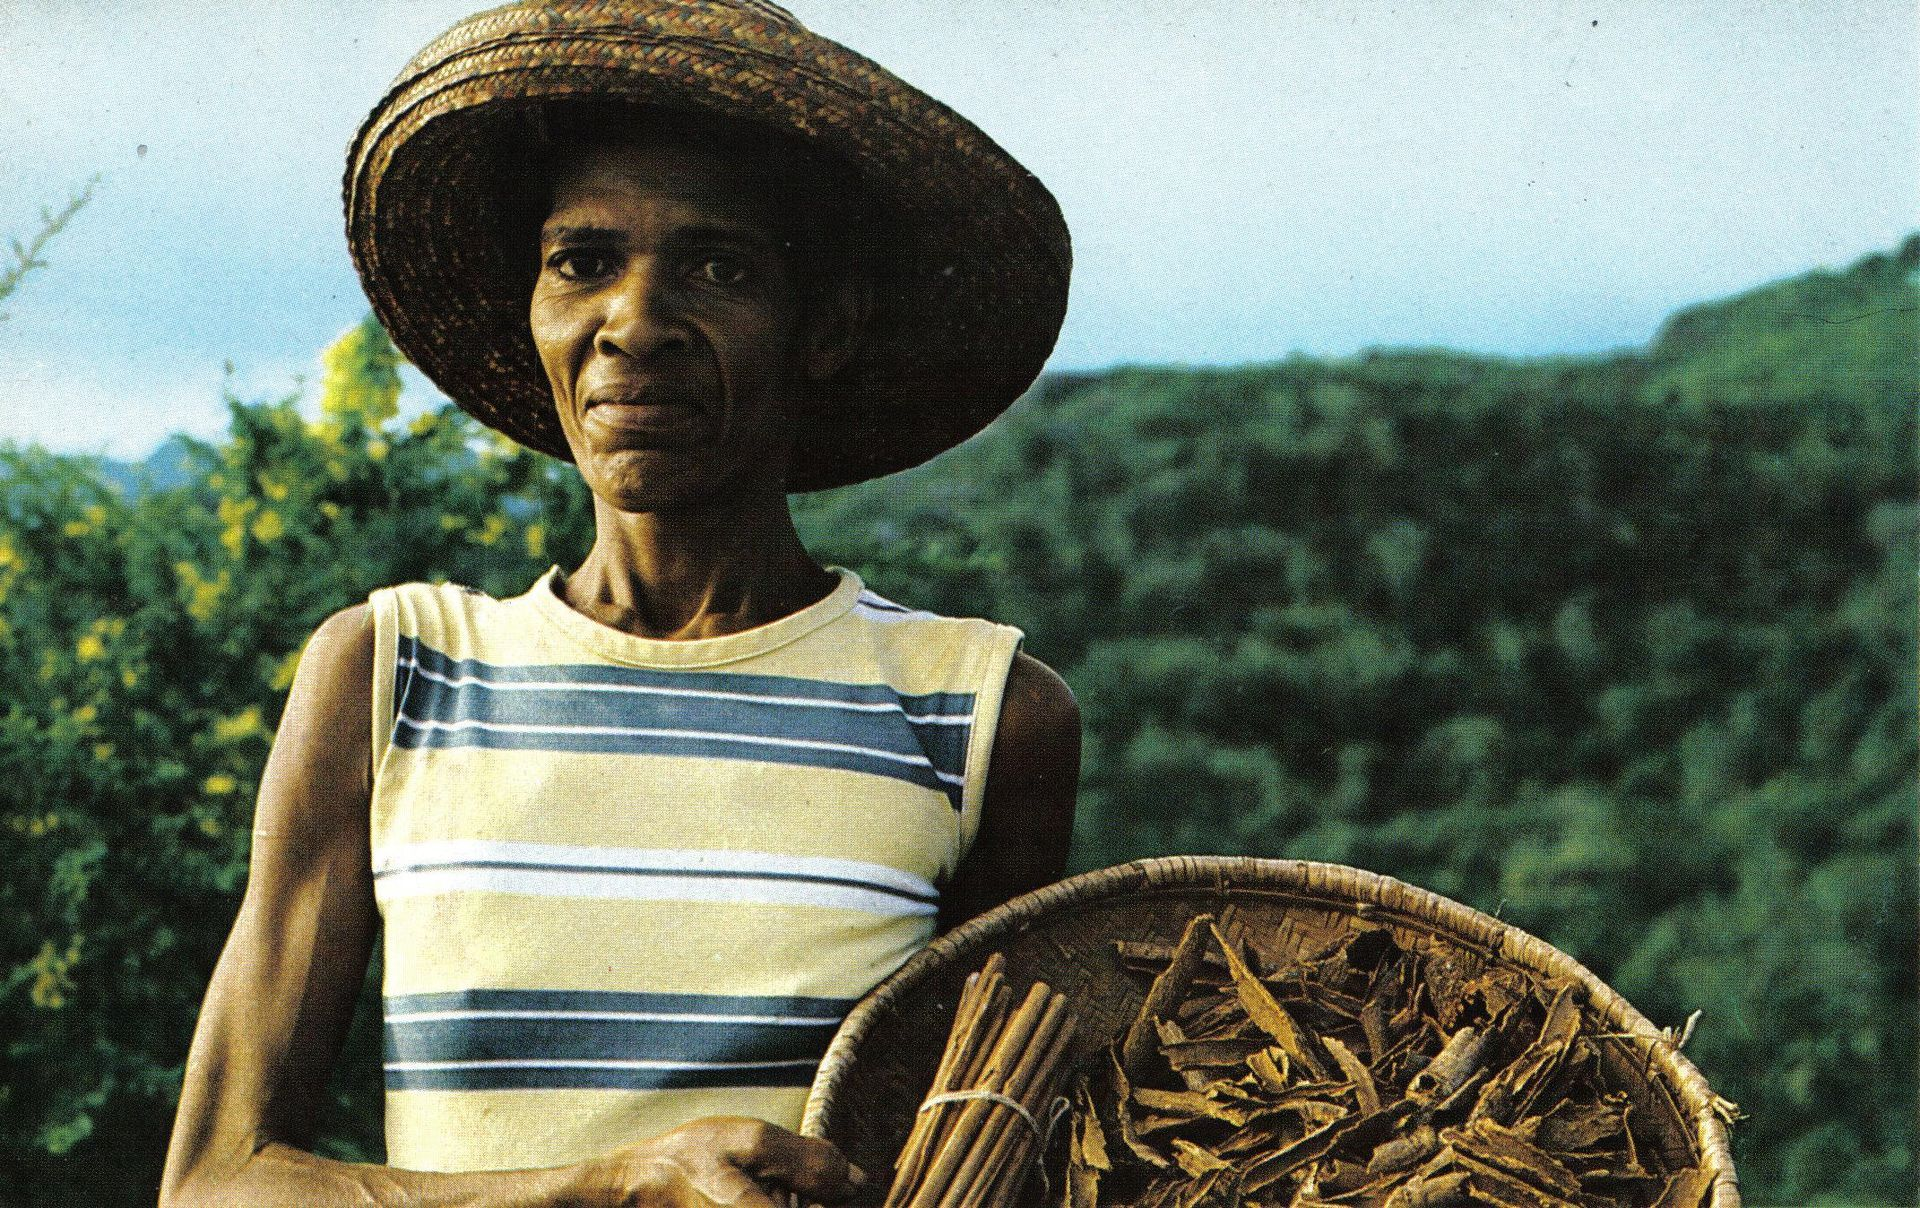 1920px-Cinnamon_quill_maker_Seychelles